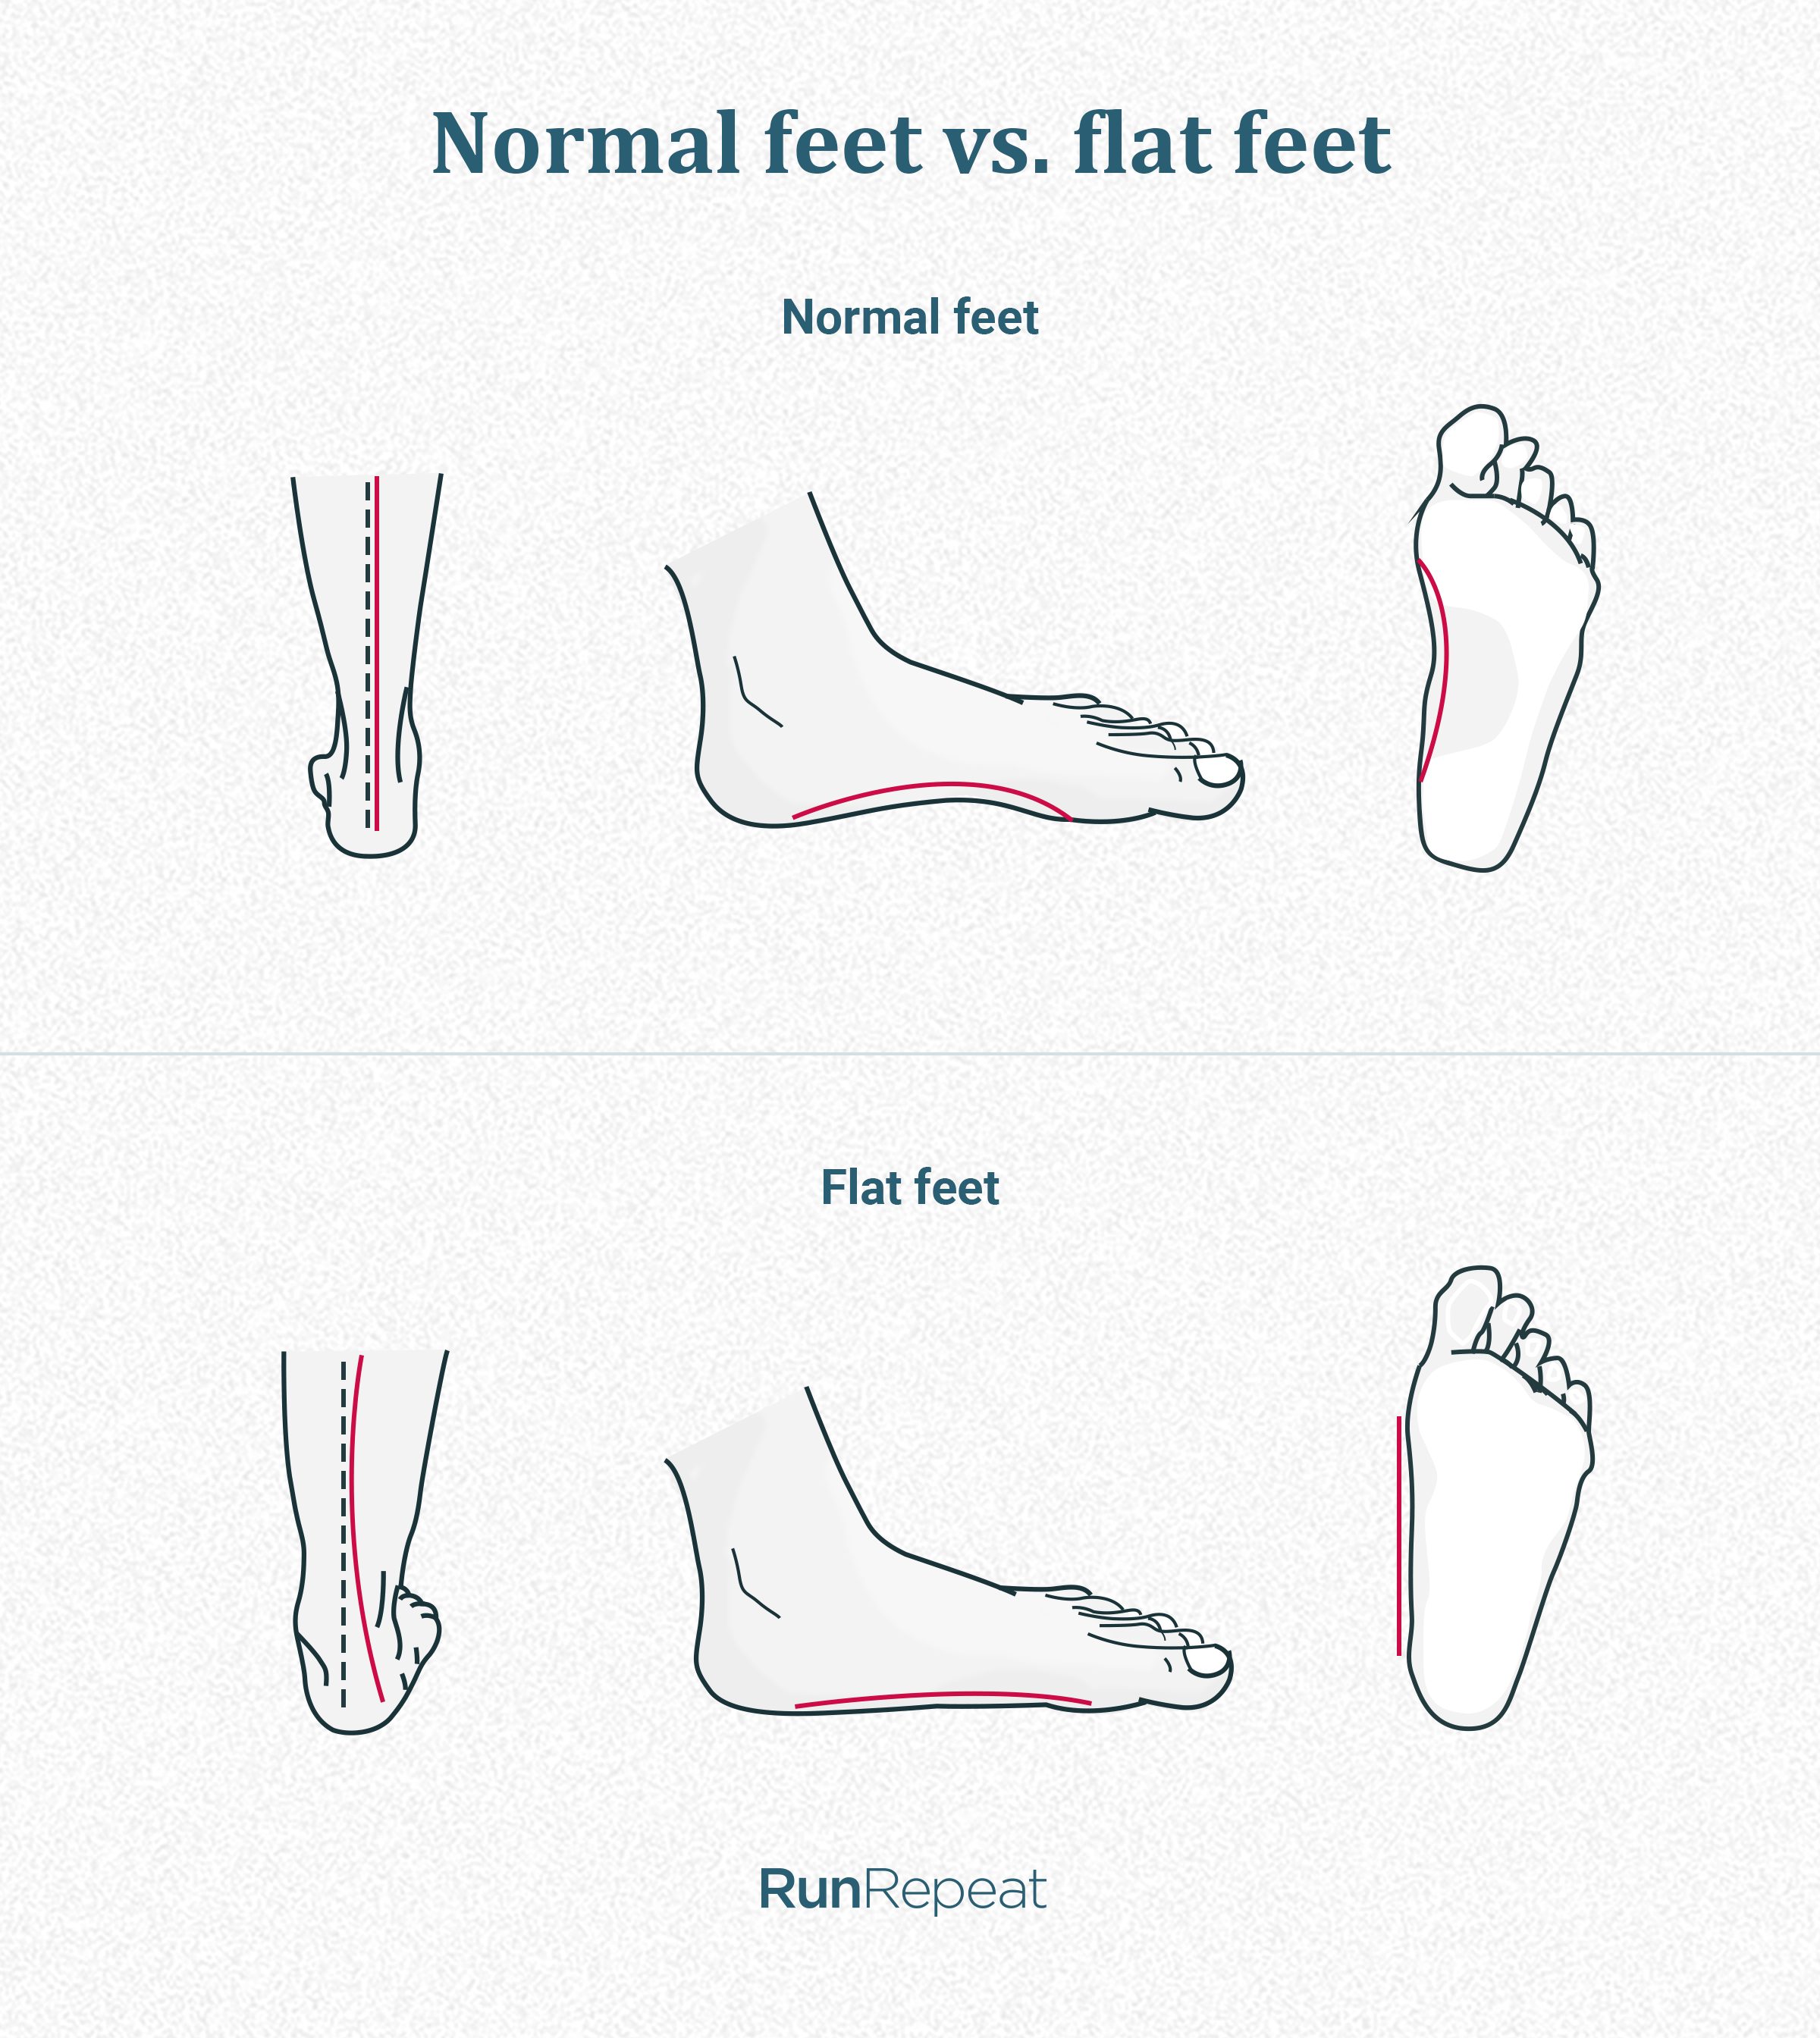 normal-feet-vs-flat-feet.png